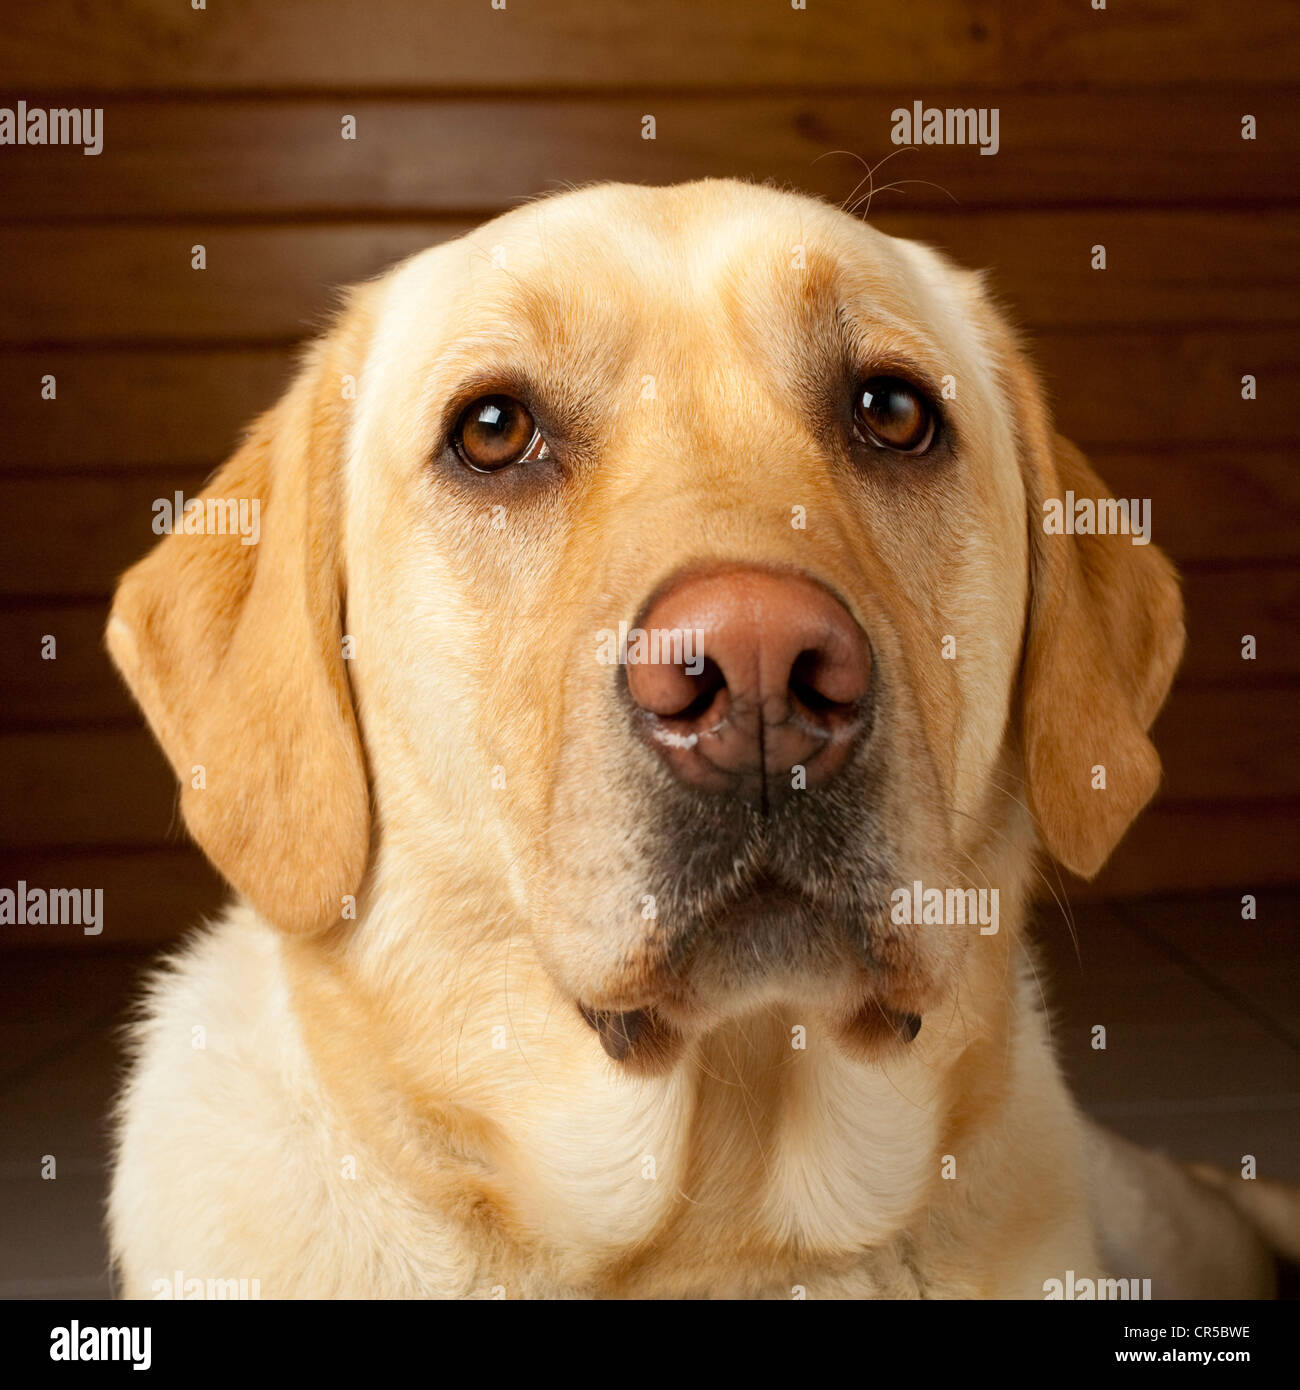 Golden labrador, 20 months old, determined not to to smile for the camera. - Stock Image